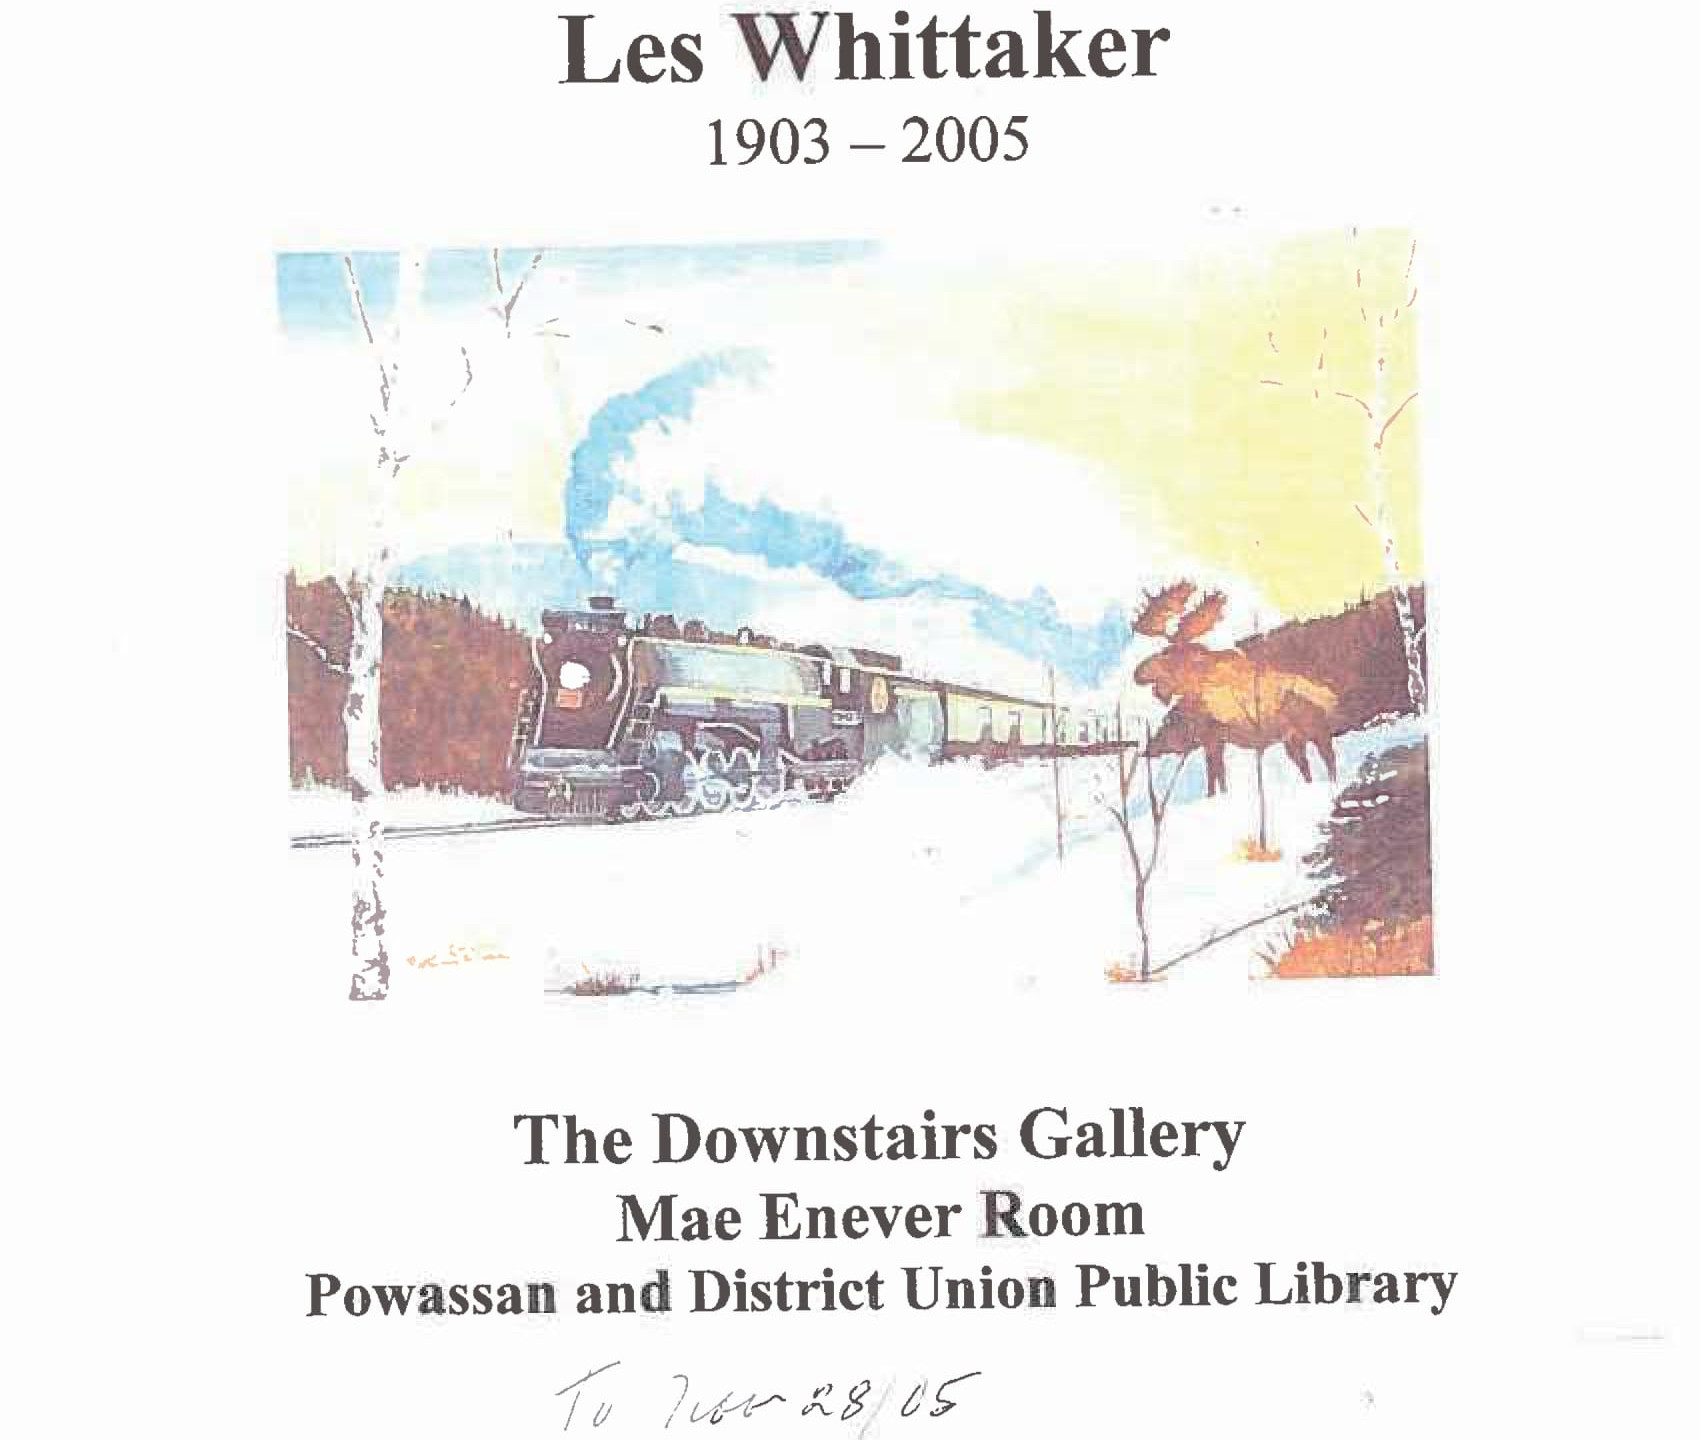 Les Whittaker - Poster-1